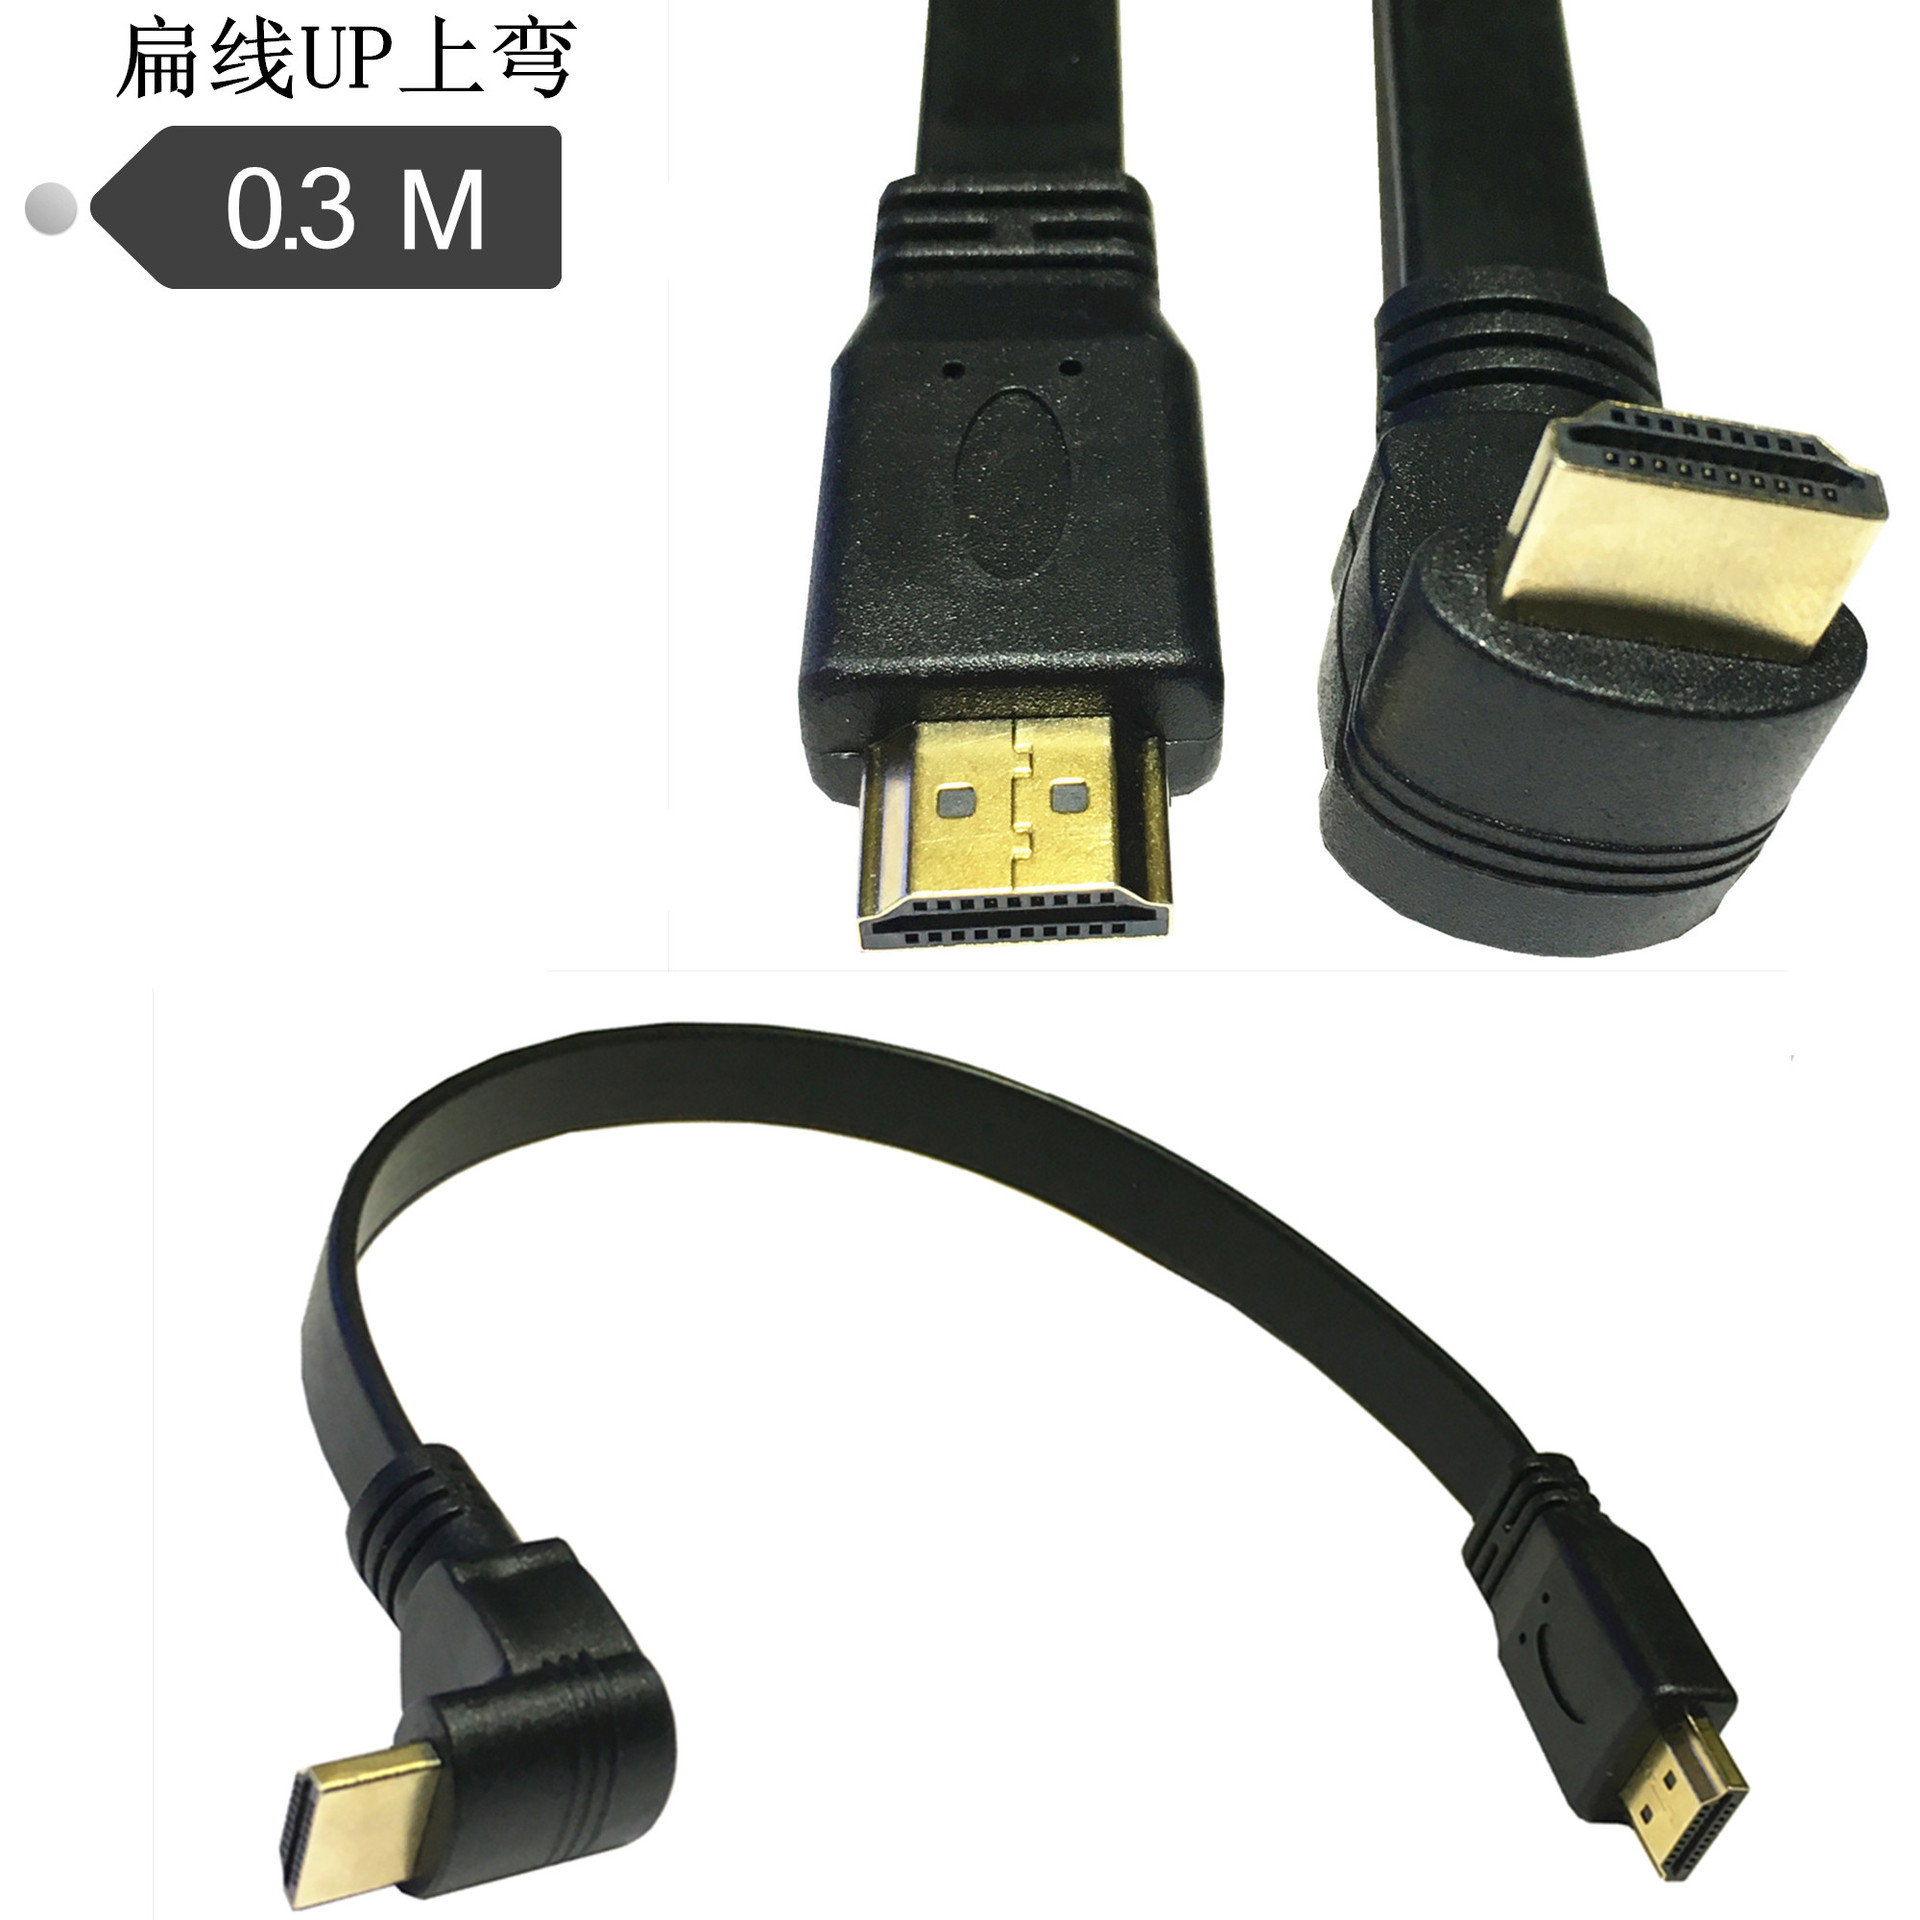 1FT Flat Slim High Speed HDMI Extension Cable A Male to A Male Cord AM/AM(China (Mainland))